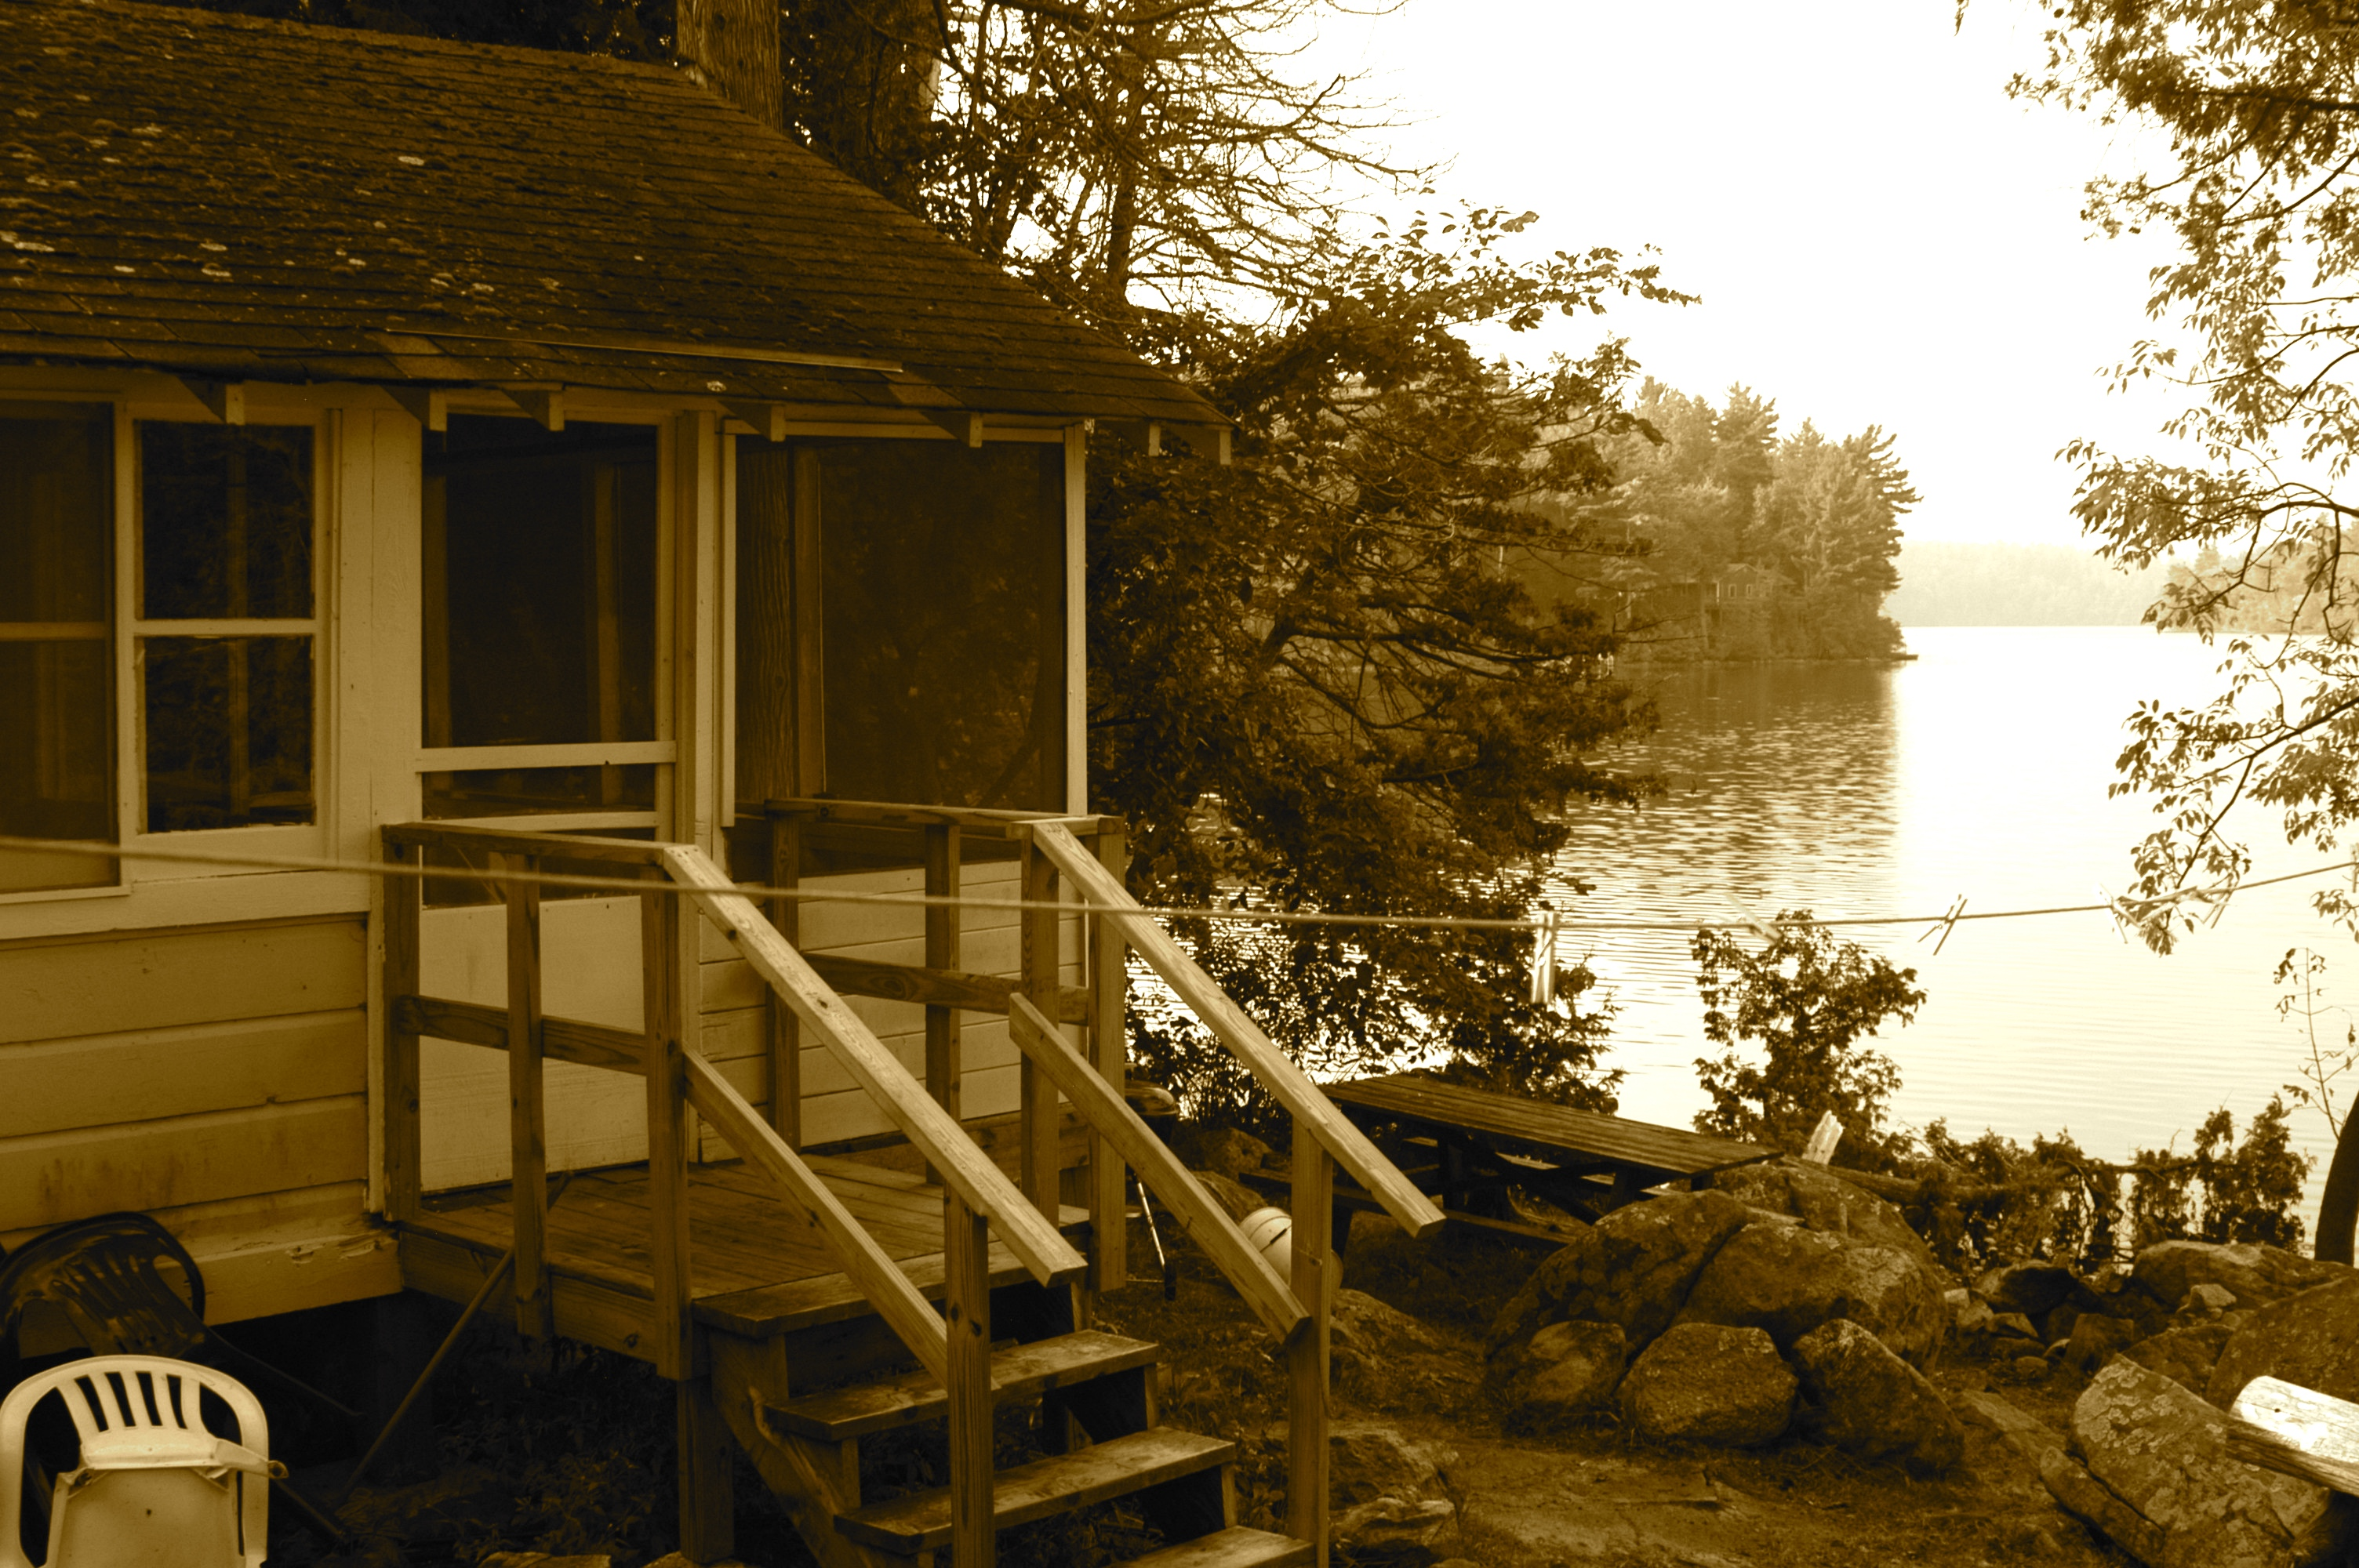 george ny are home located outdoor log lake park plans a cabins in and cabin our picturesque rent hillside water pyt on cottages